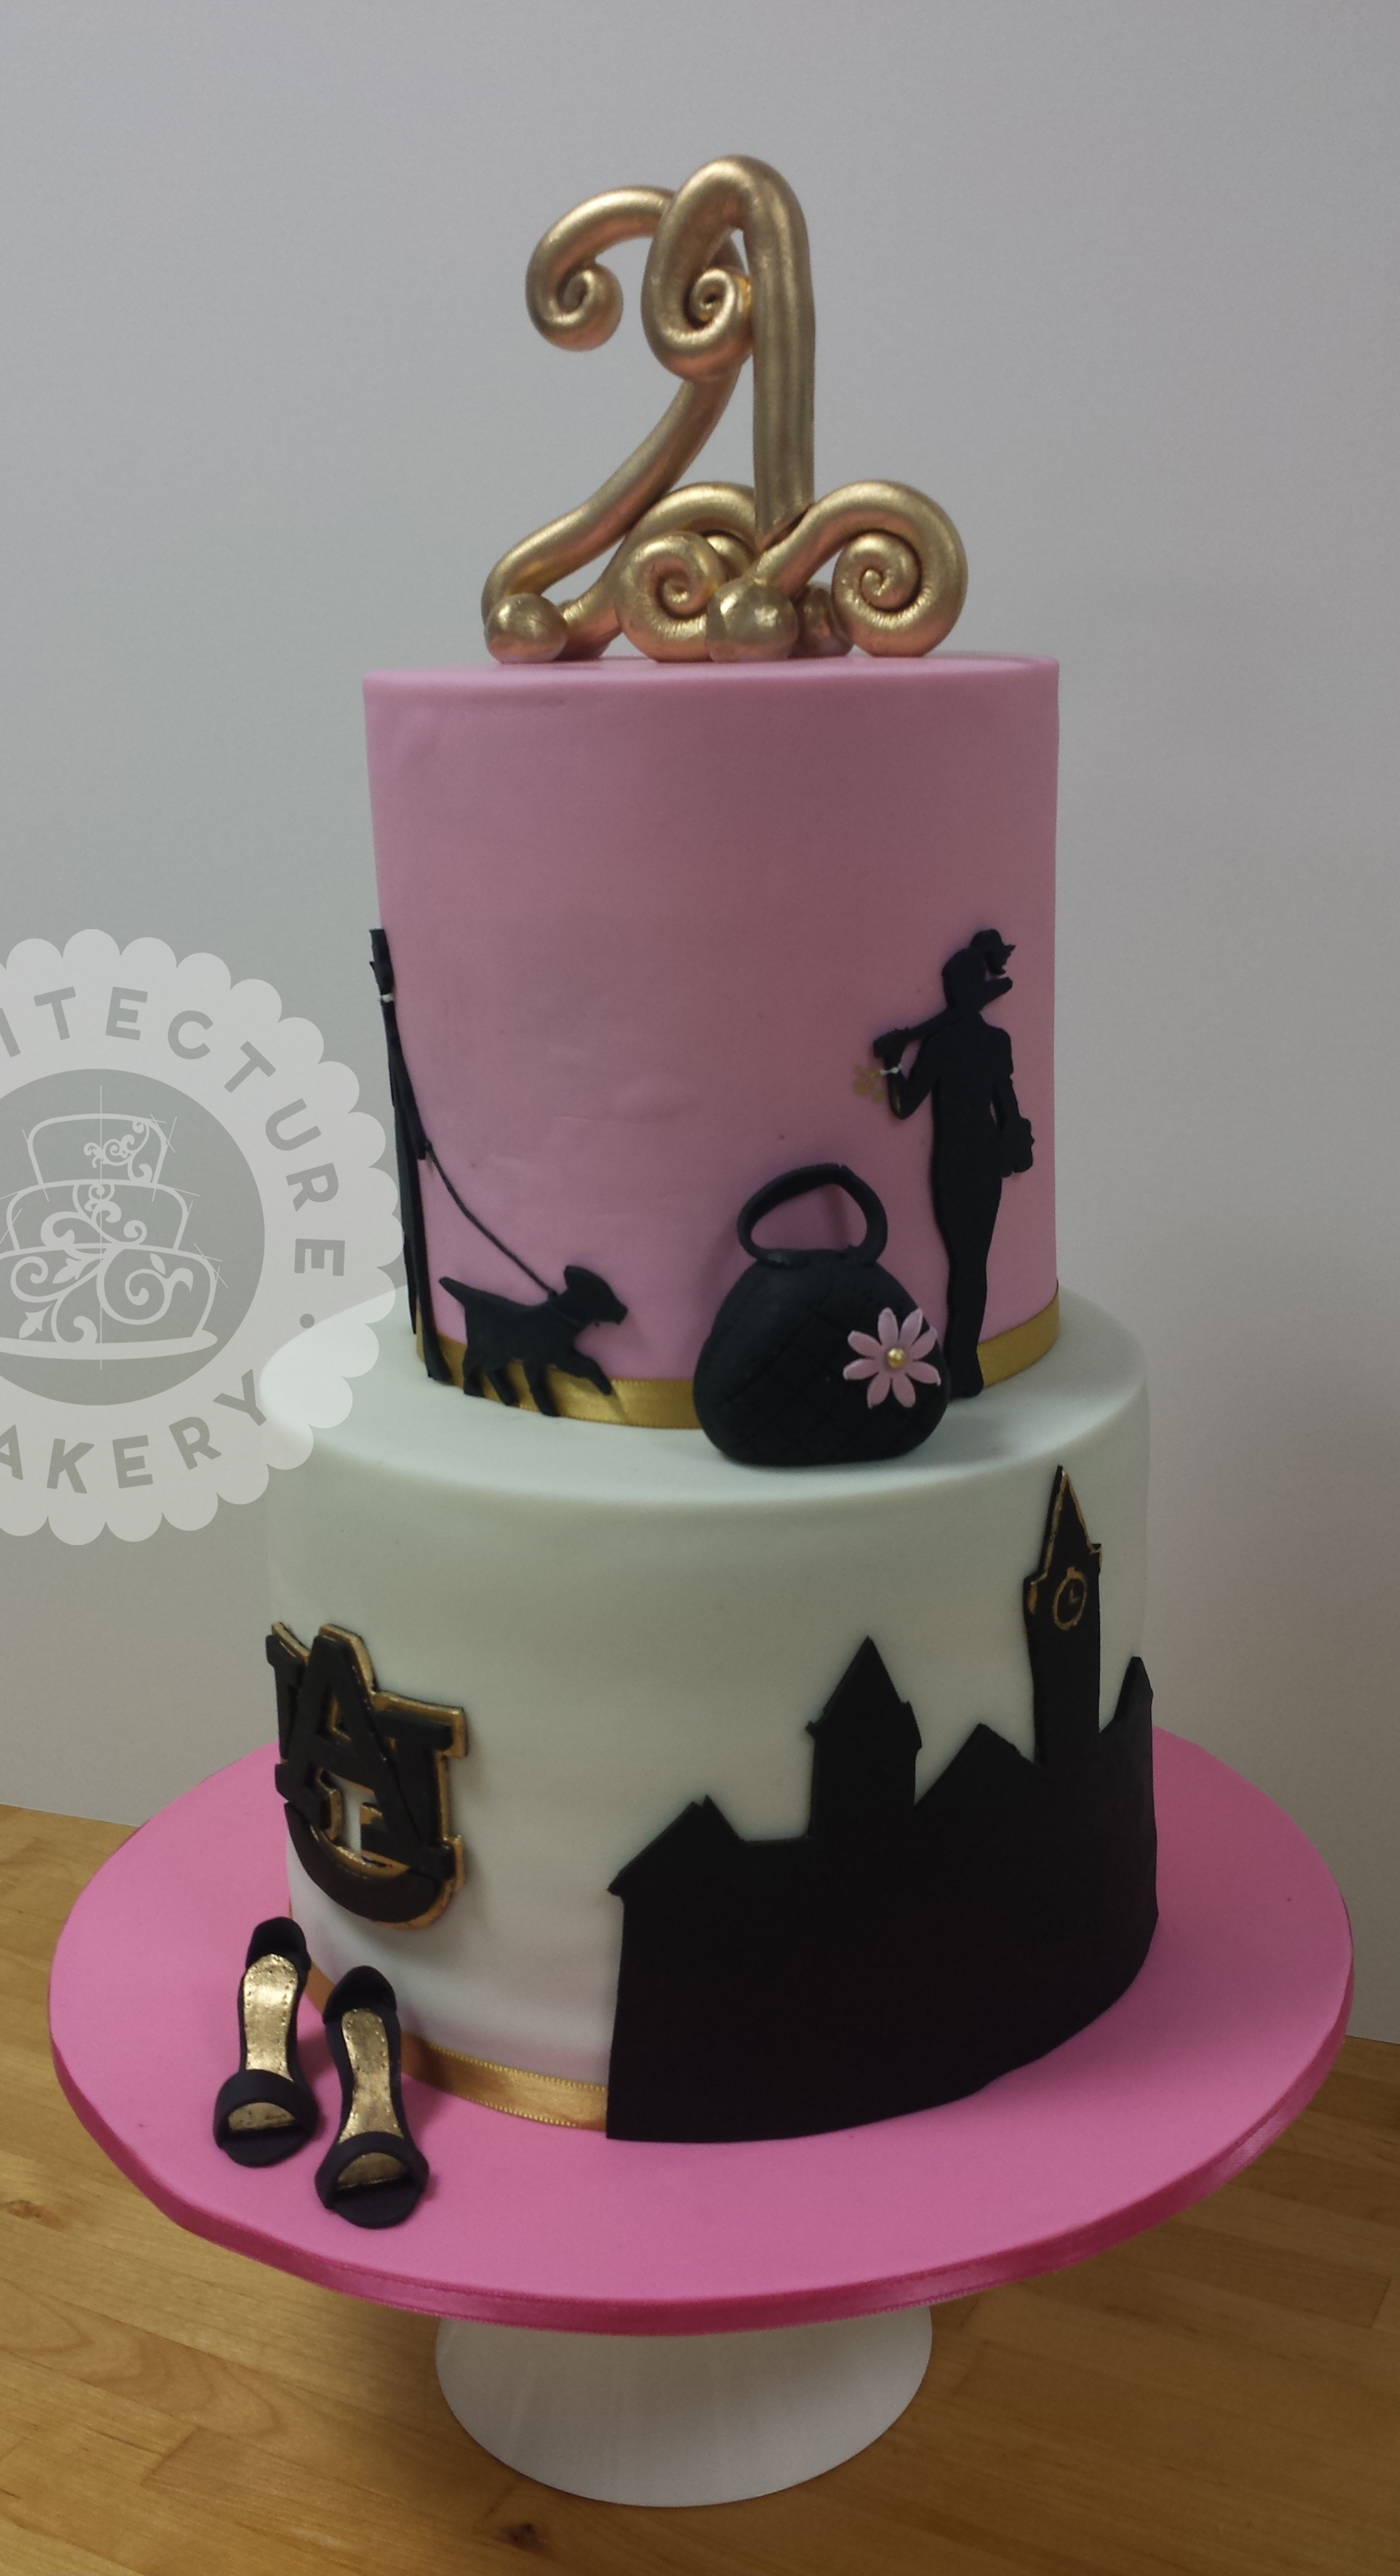 Cakeitecture Bakery stacked16.jpg